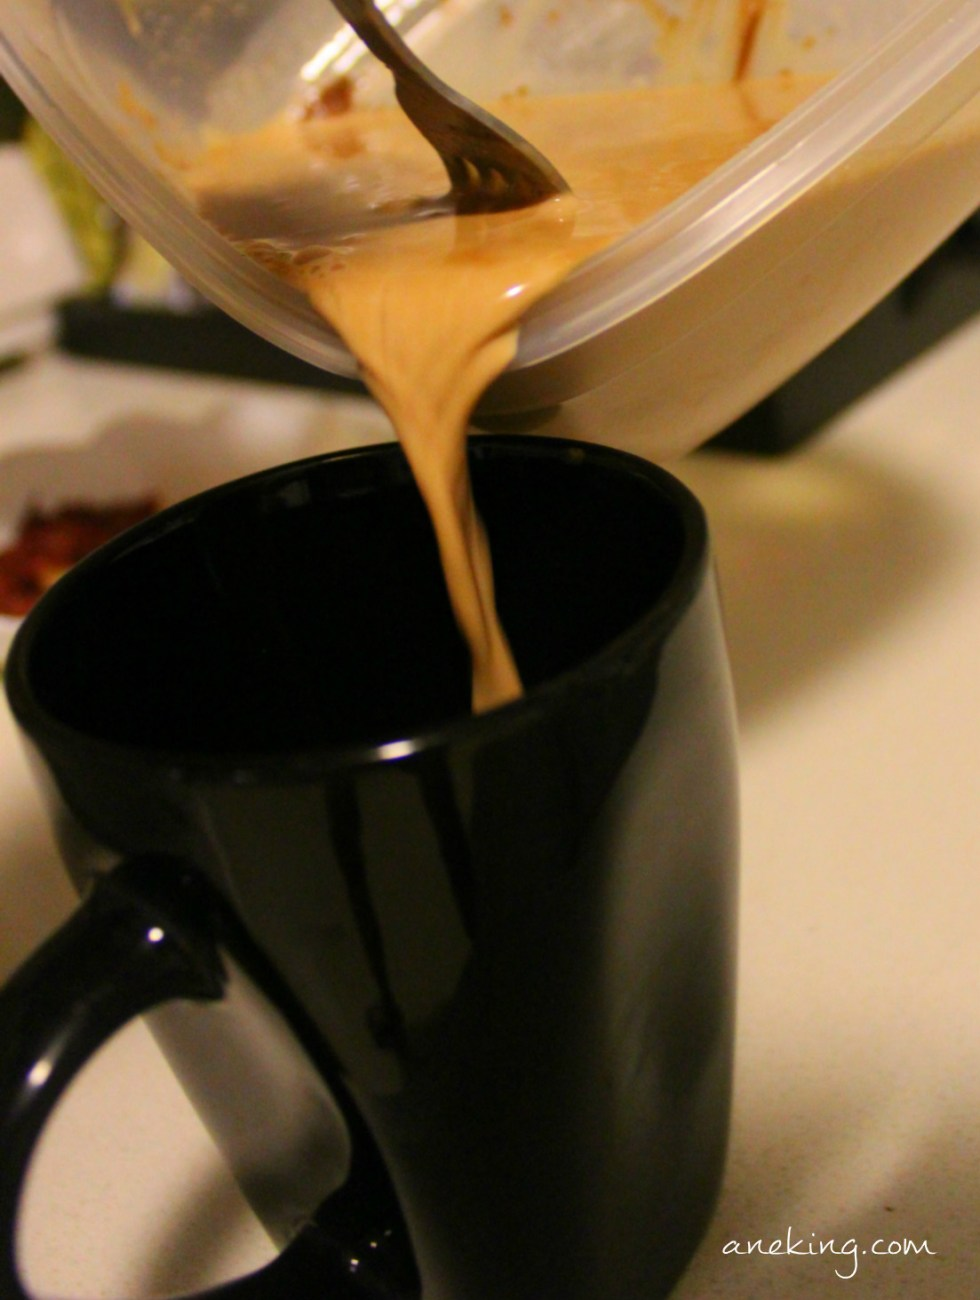 7. Pour it into a mug or cup.